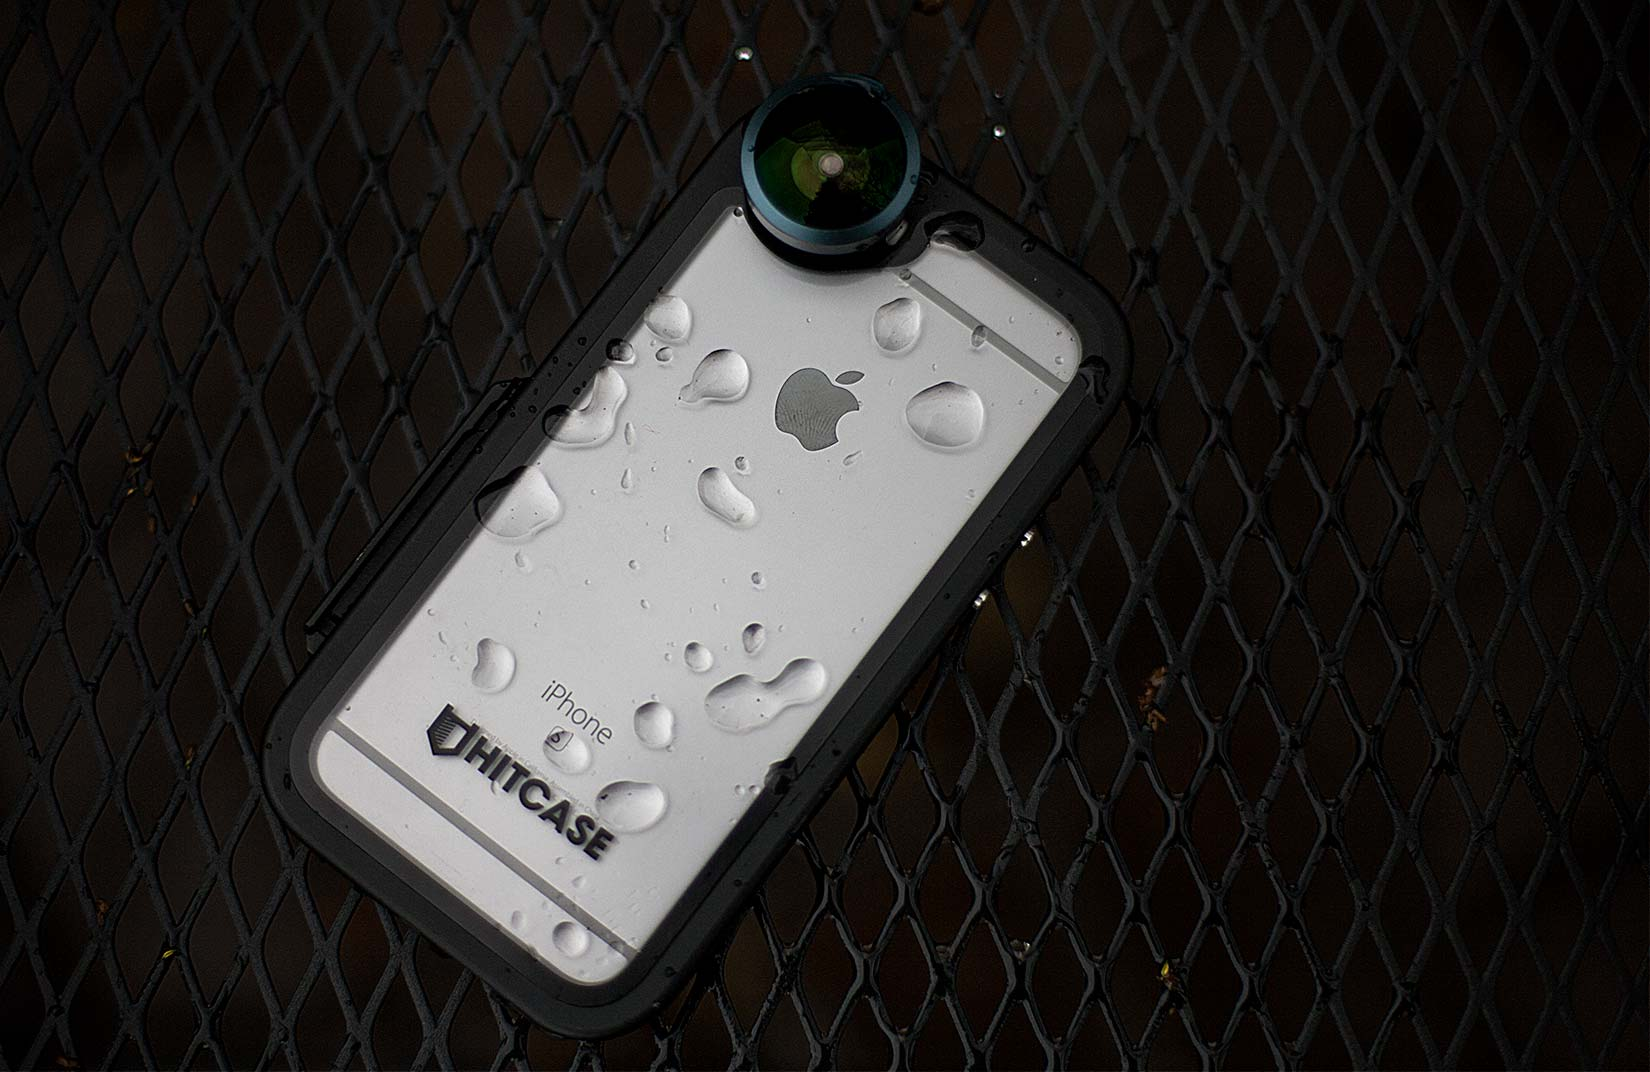 The Hitcase Pro 2.0, shown with a super-wide lens, is now available for iPhone 6, 6s and 7 on Kickstarter.